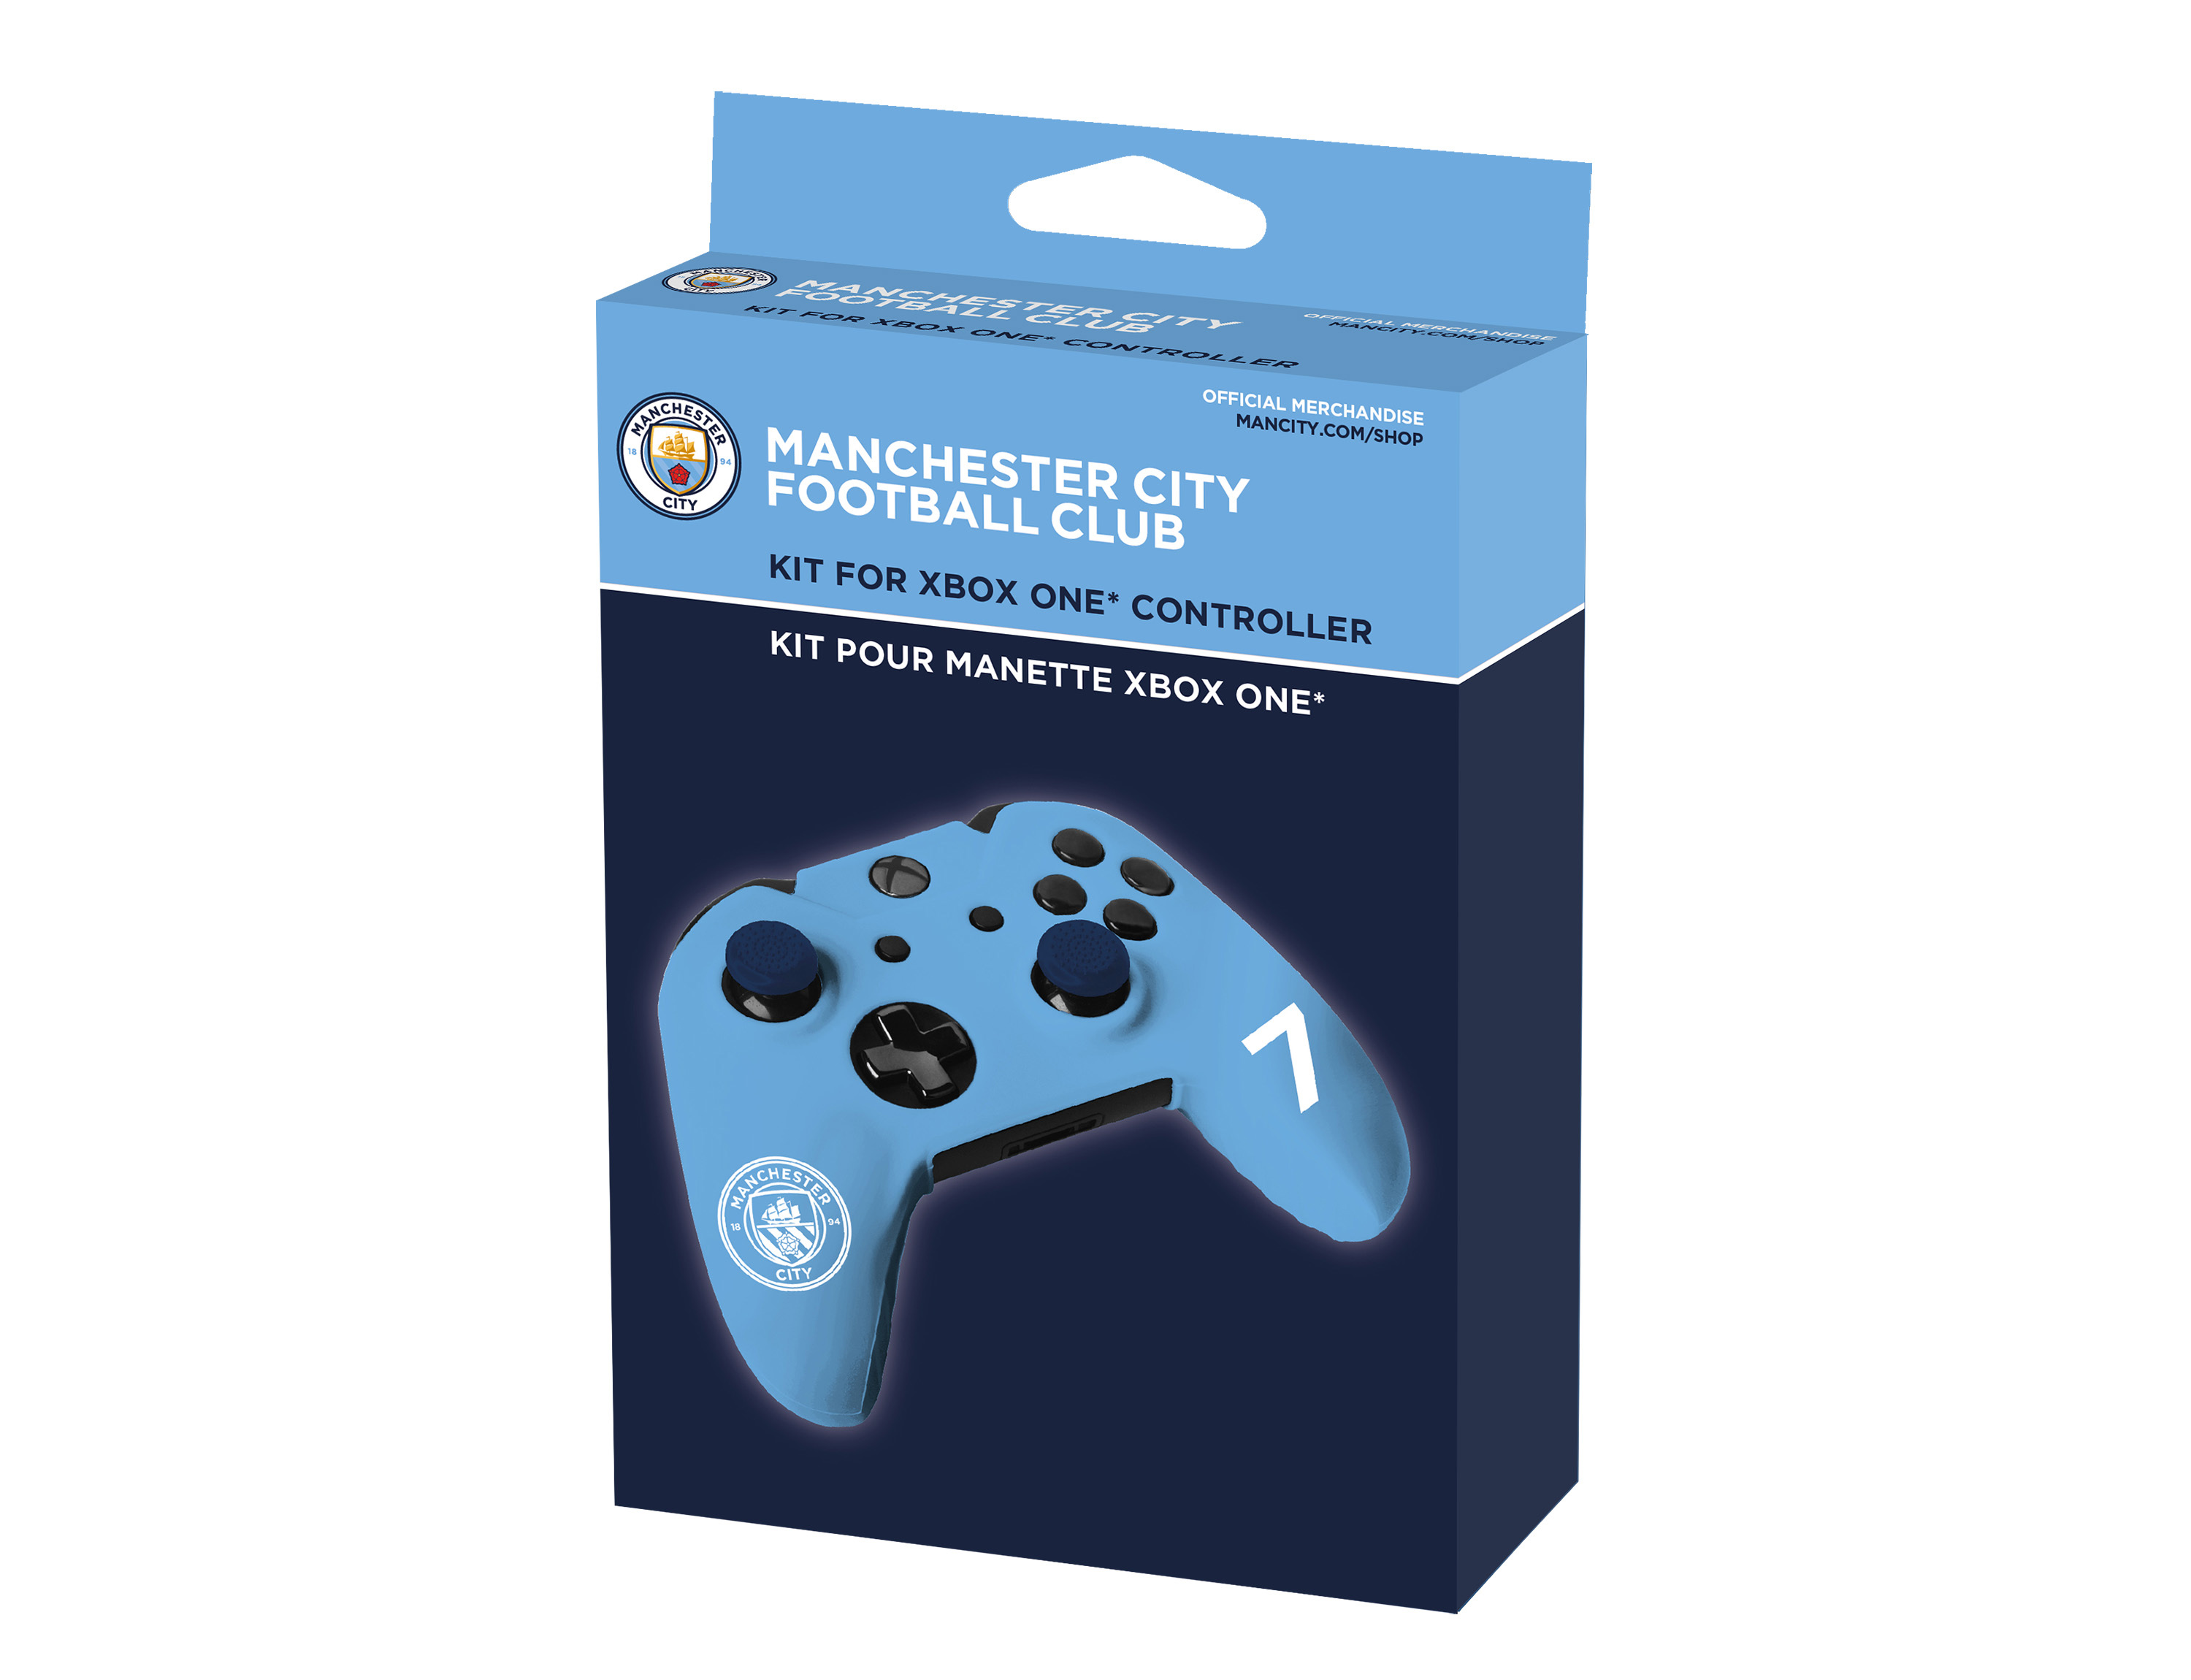 Custom kit for Xbox One controller MCFC MANCHESTER CITY